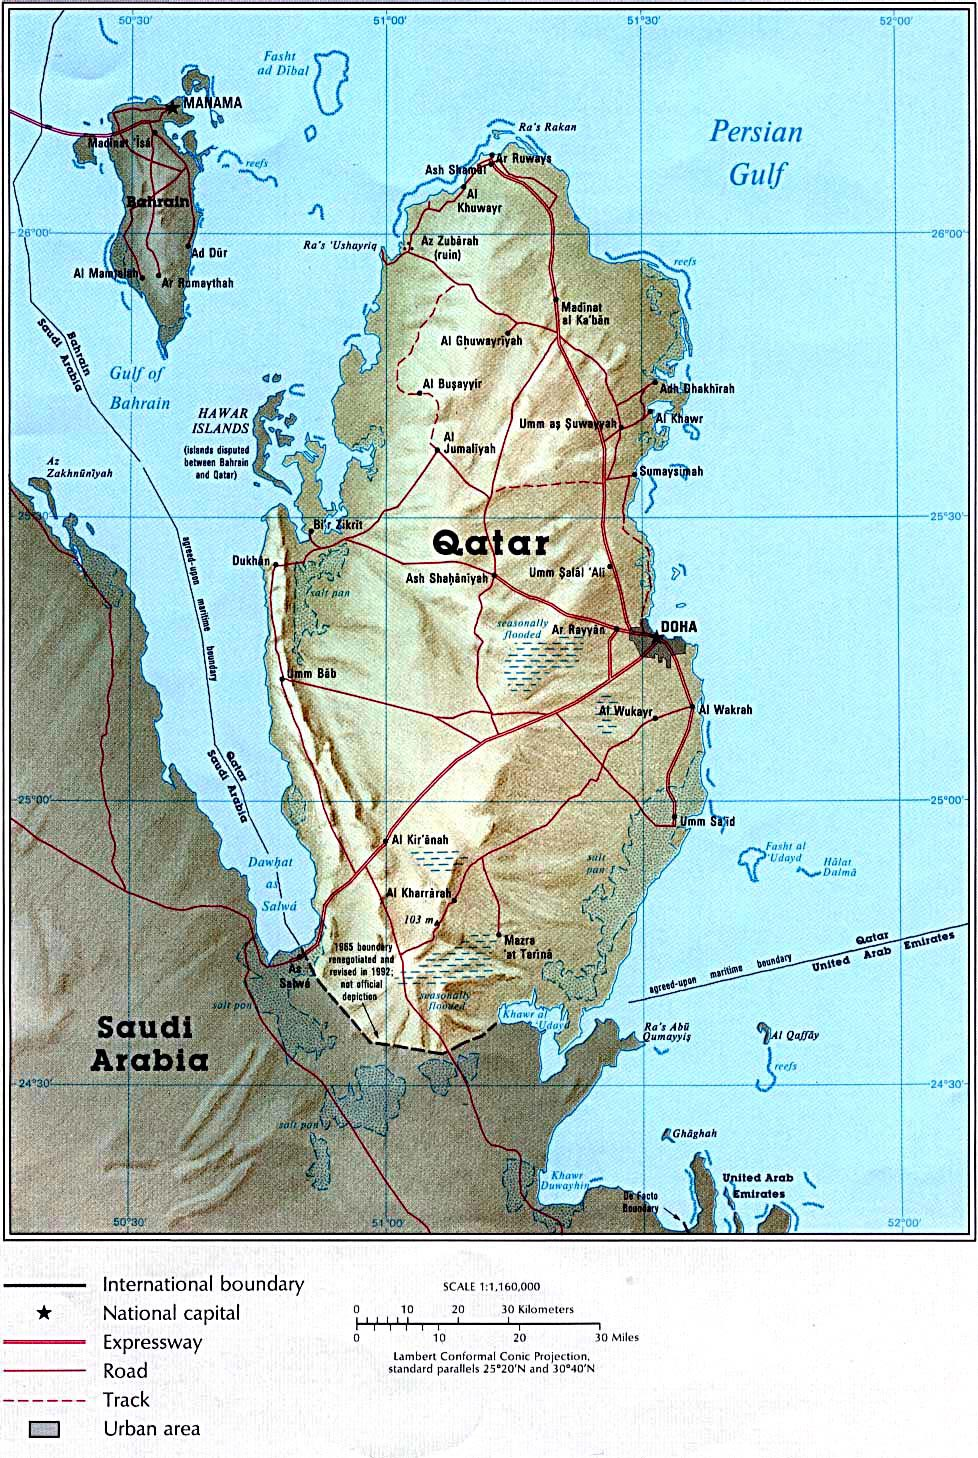 Qatar maps | Printable maps of Qatar for download